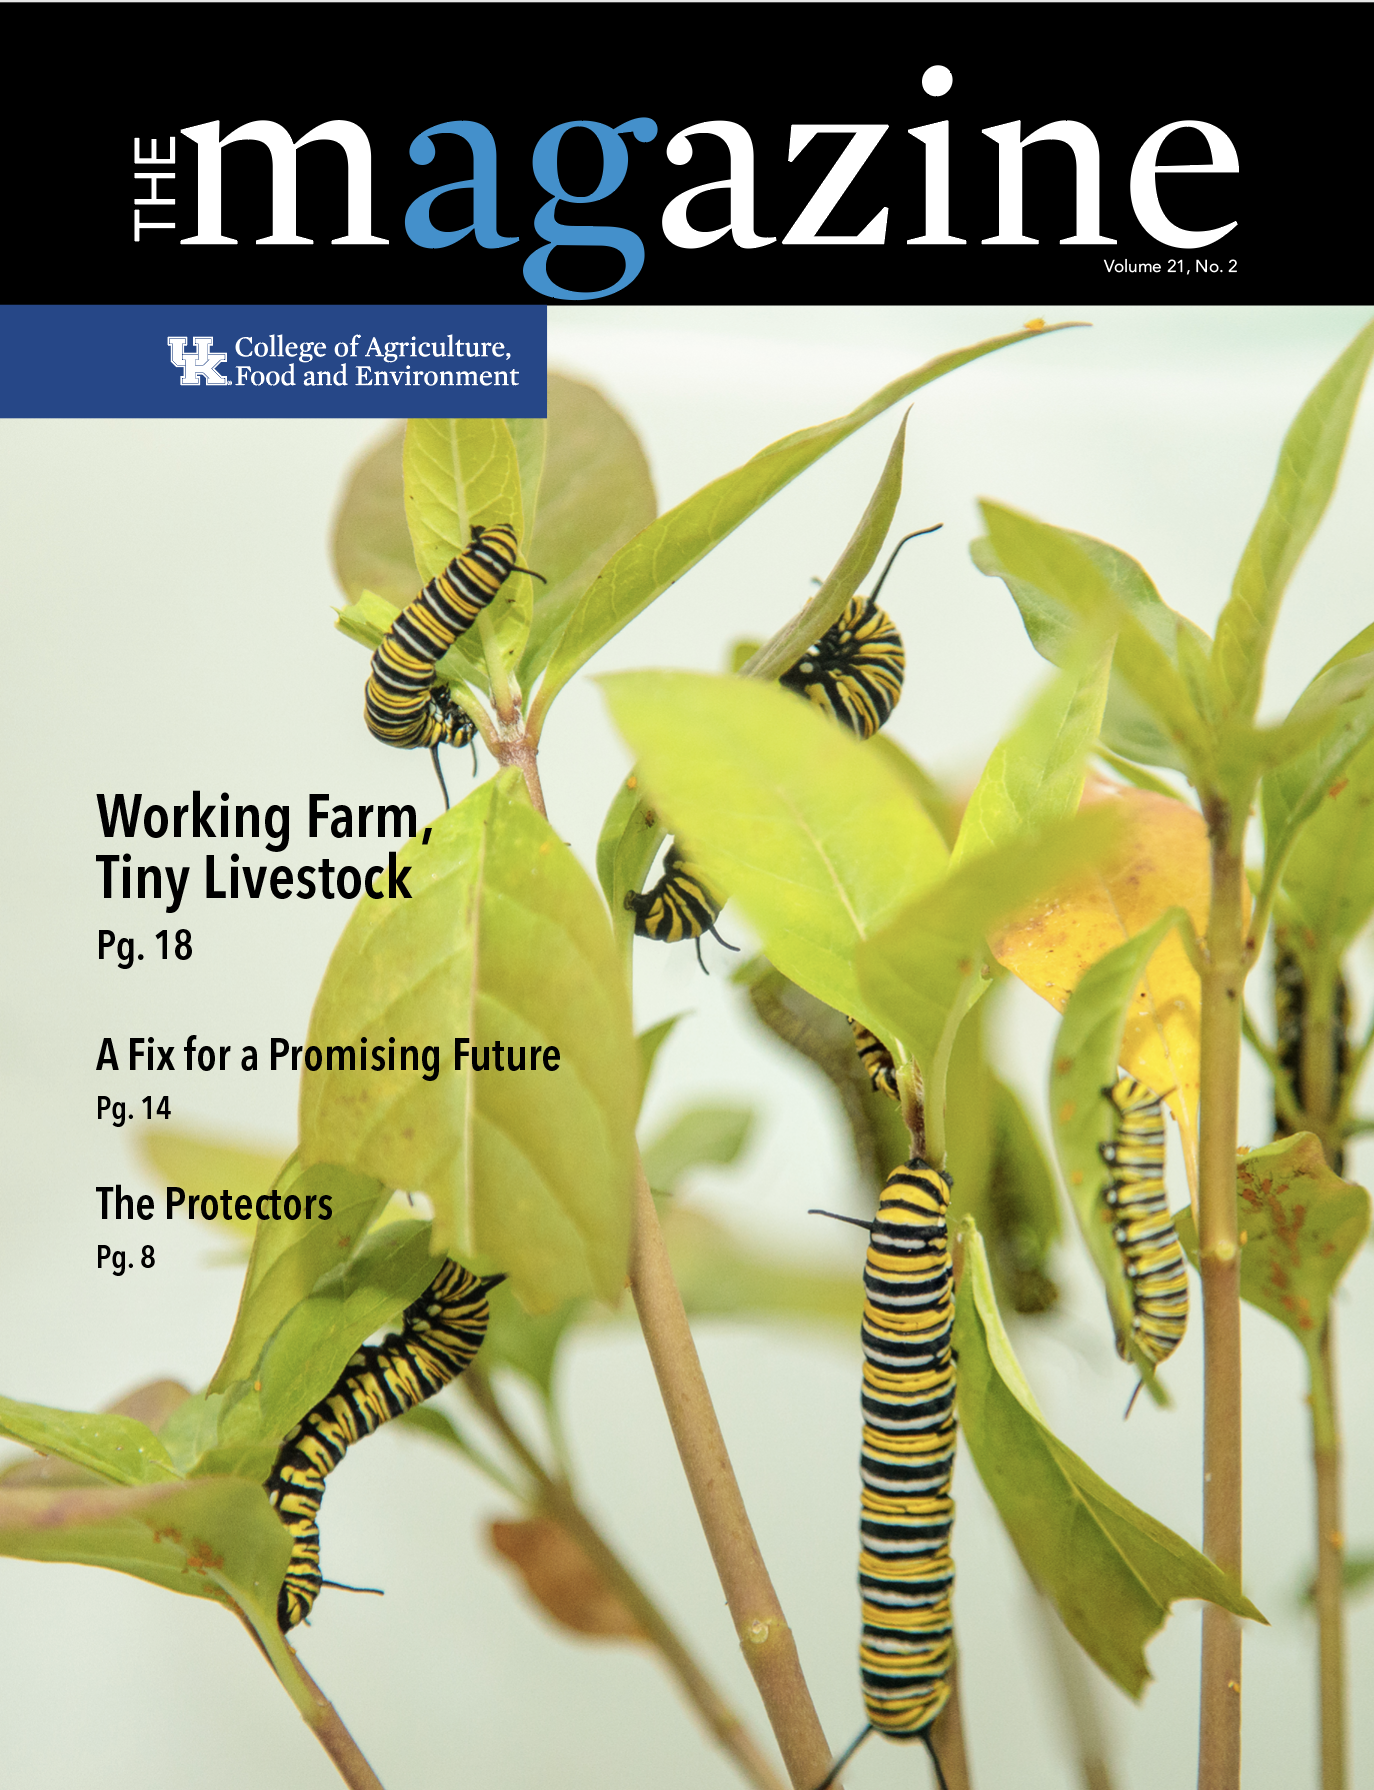 Fall Magazine 2019 with photo of insects